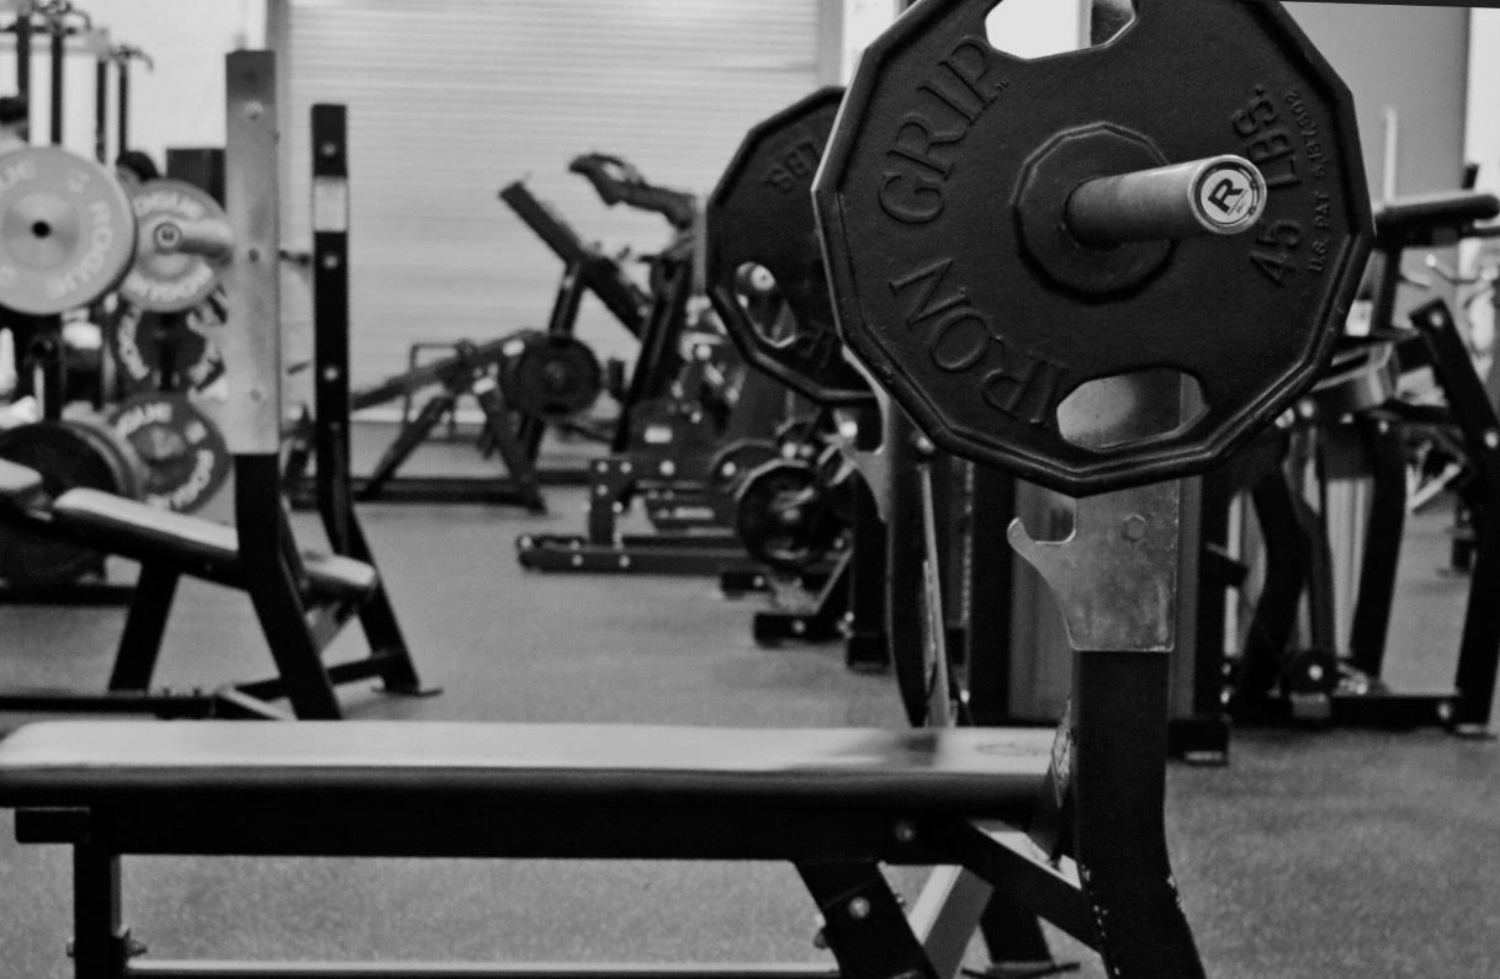 THE ULTIMATE GYM EXPERIENCE - miami, FL